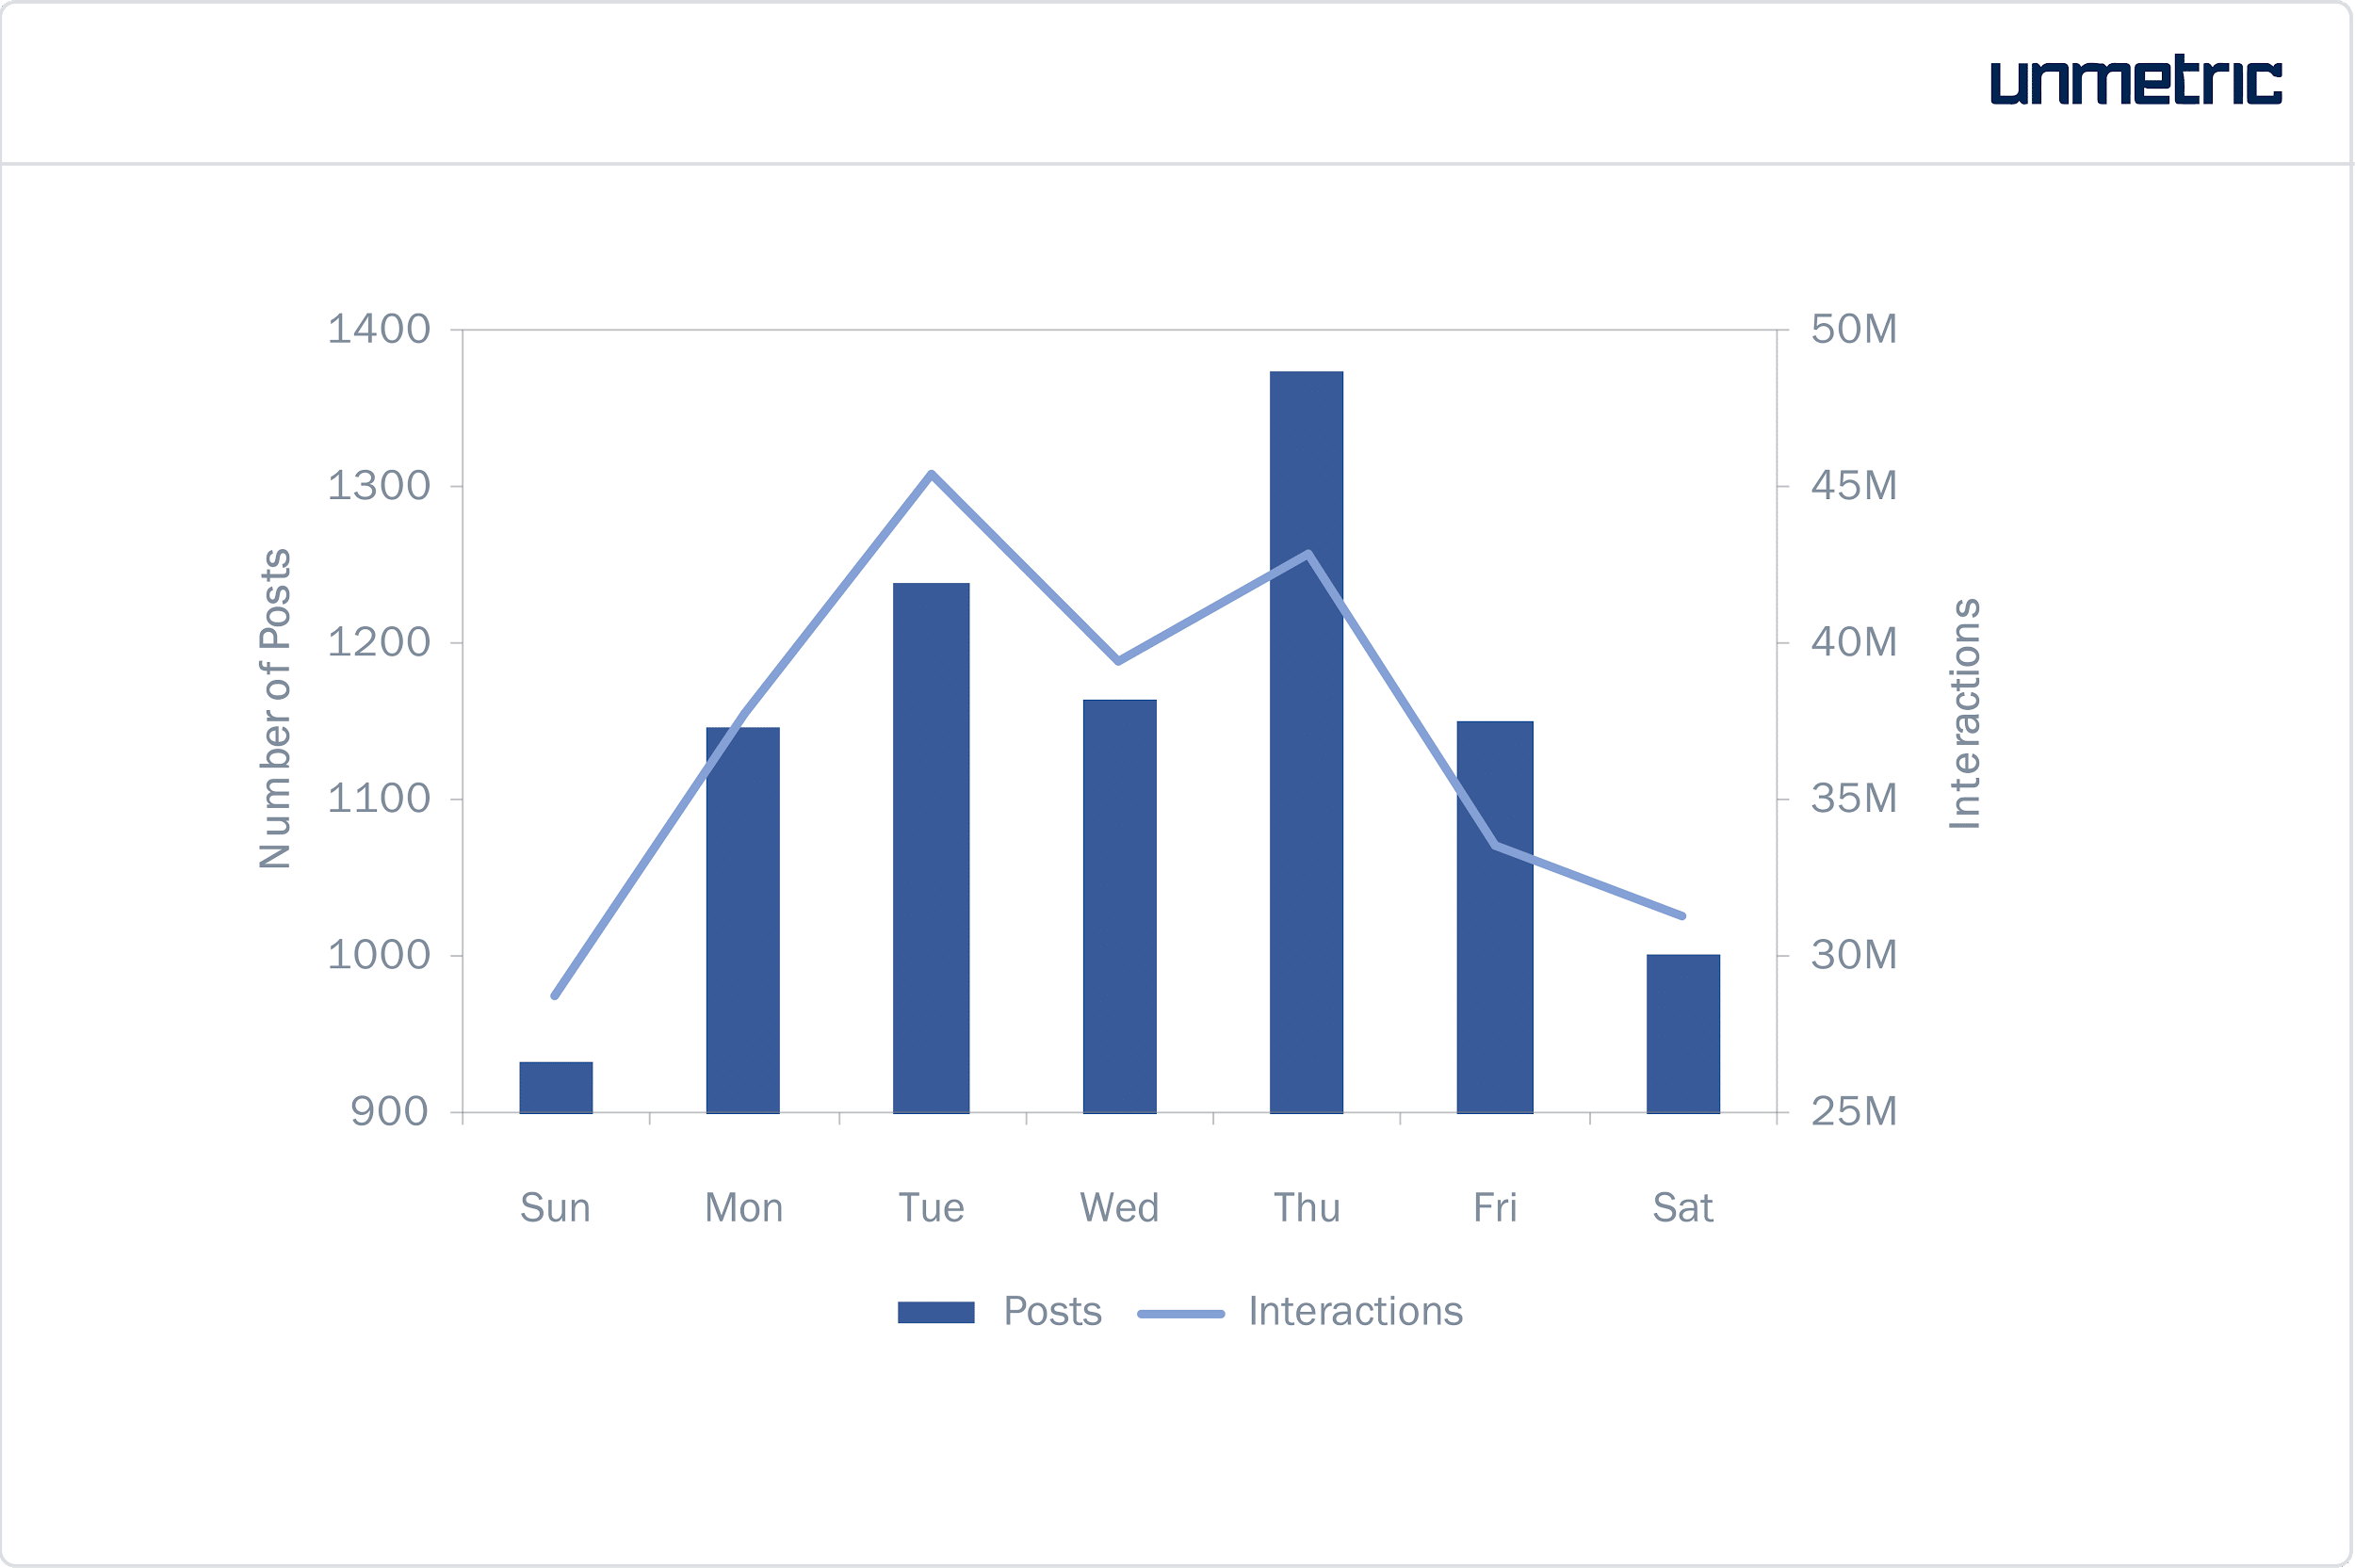 Average interactions per post on Instagram